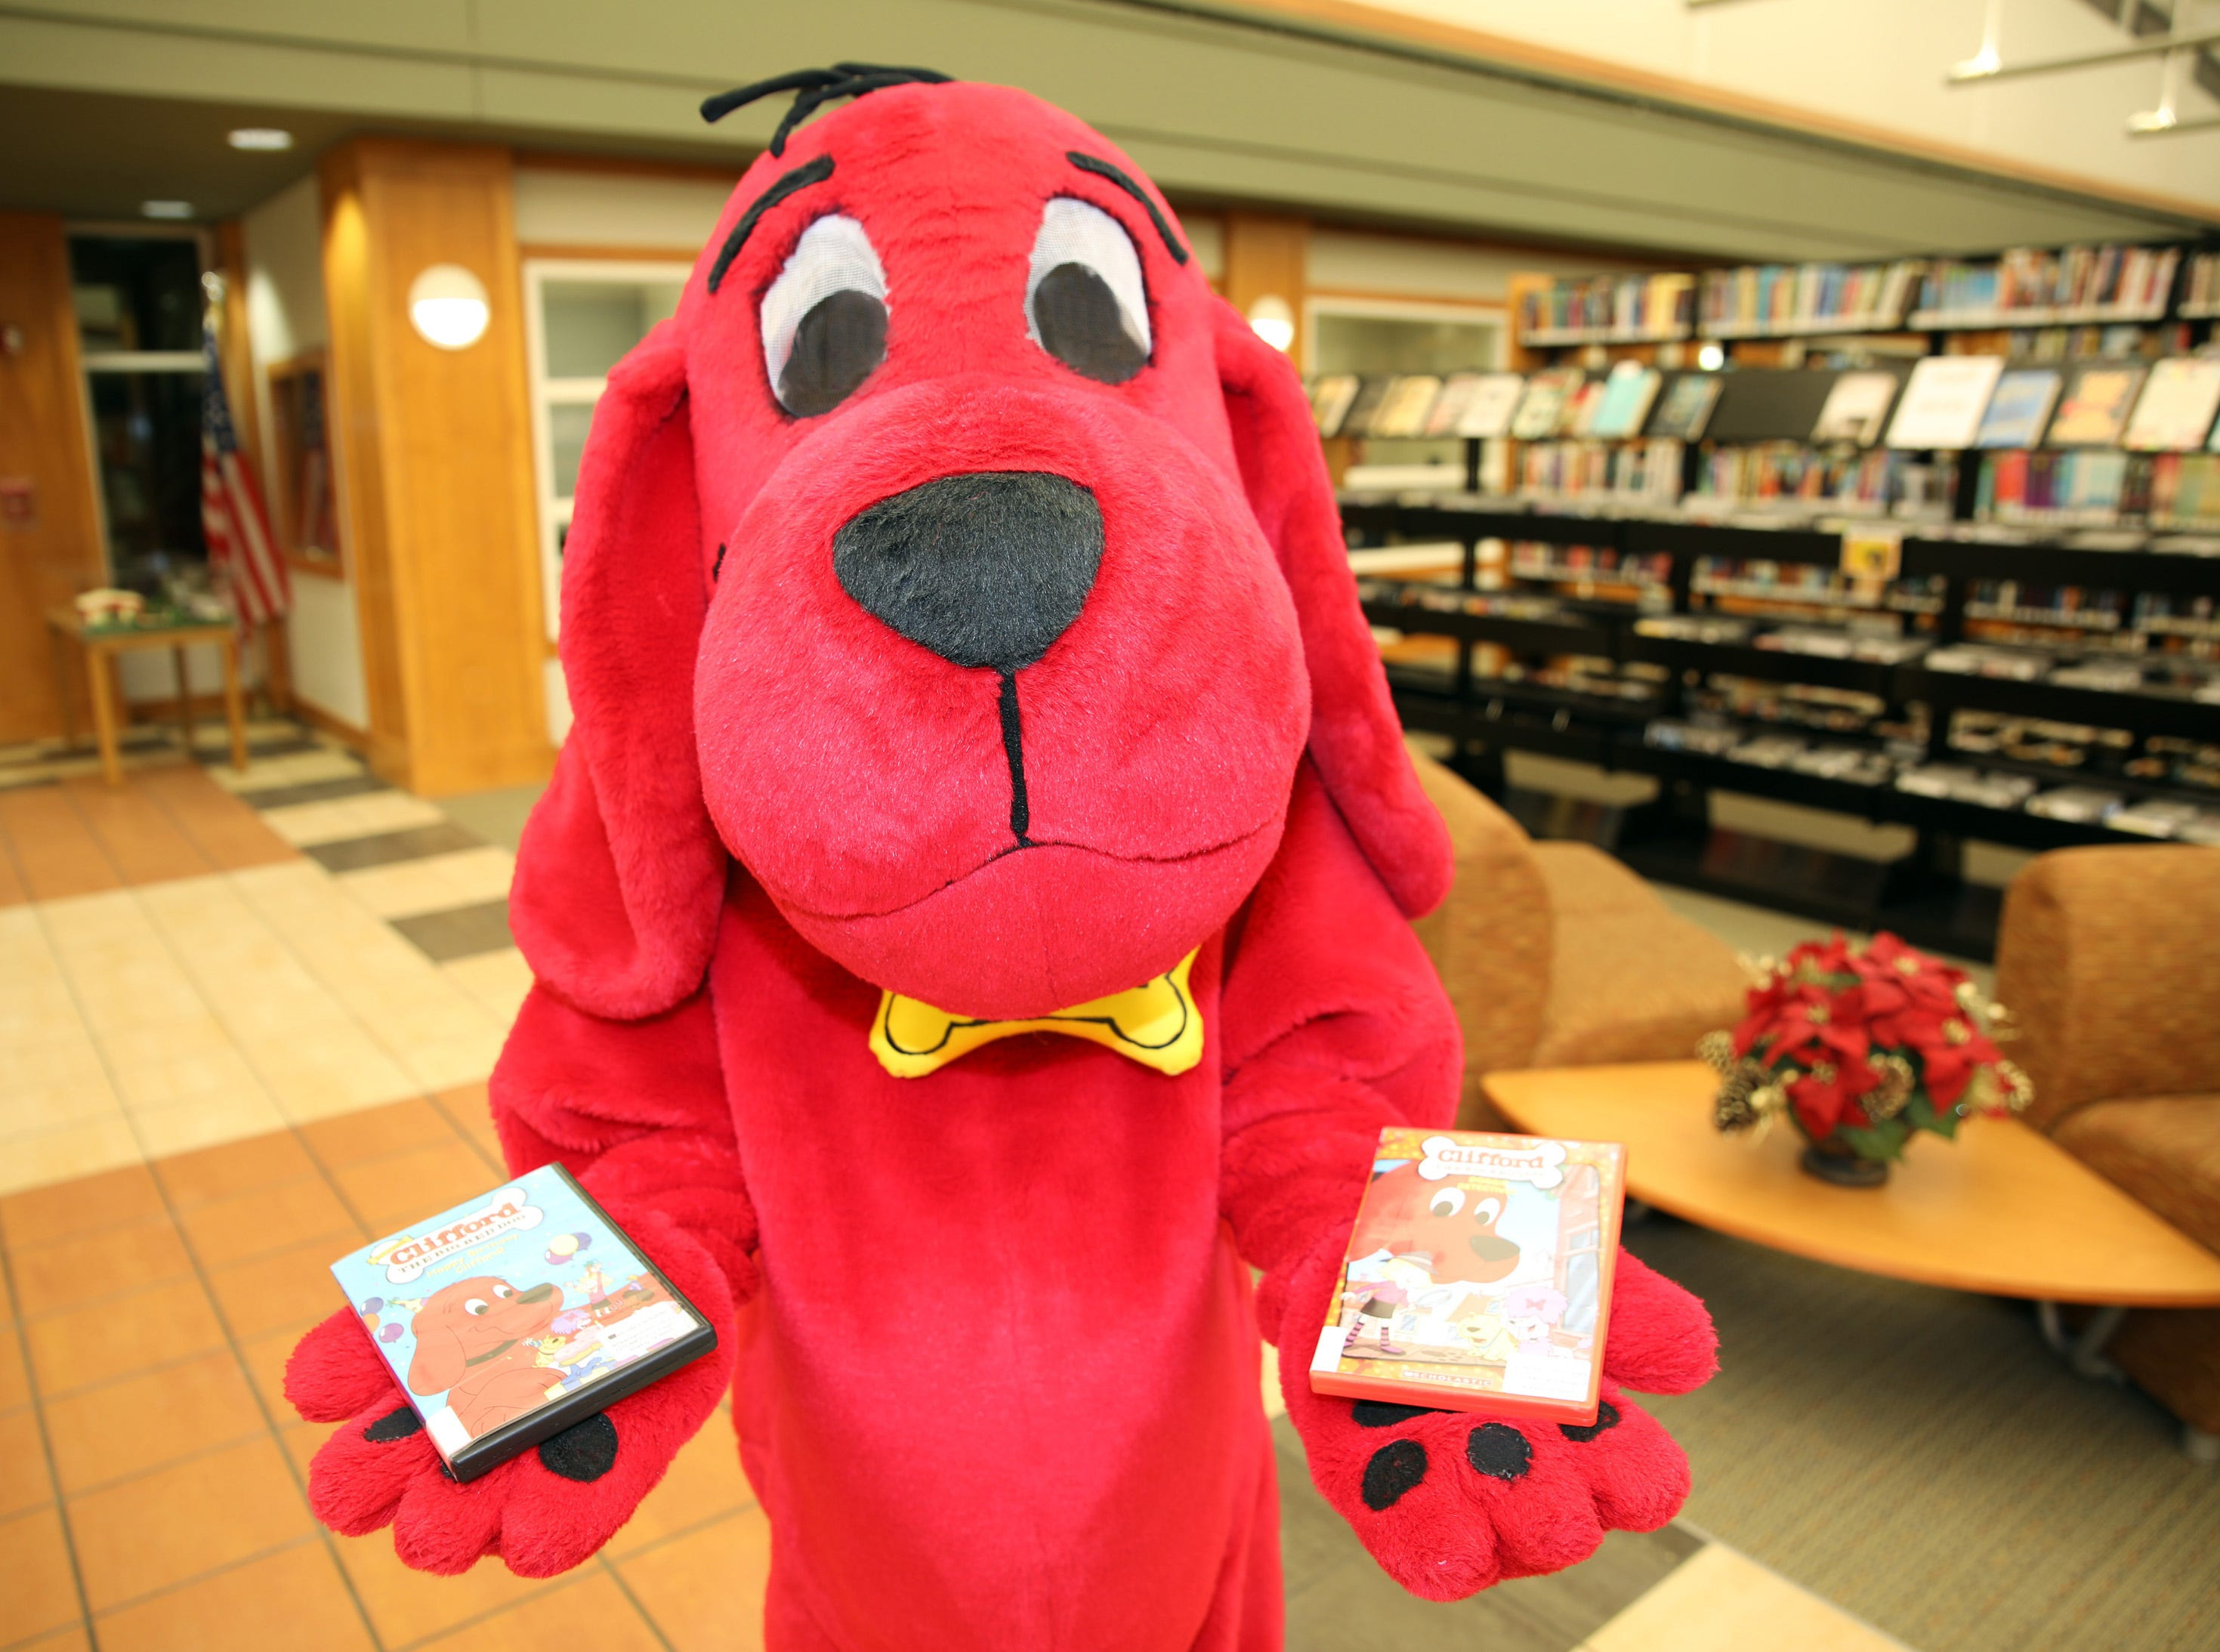 Clifford the Big Red Dog holds a few DVDs available to check out during his birthday party at Kirkendall Public Library on Tuesday, Feb. 5, 2019.